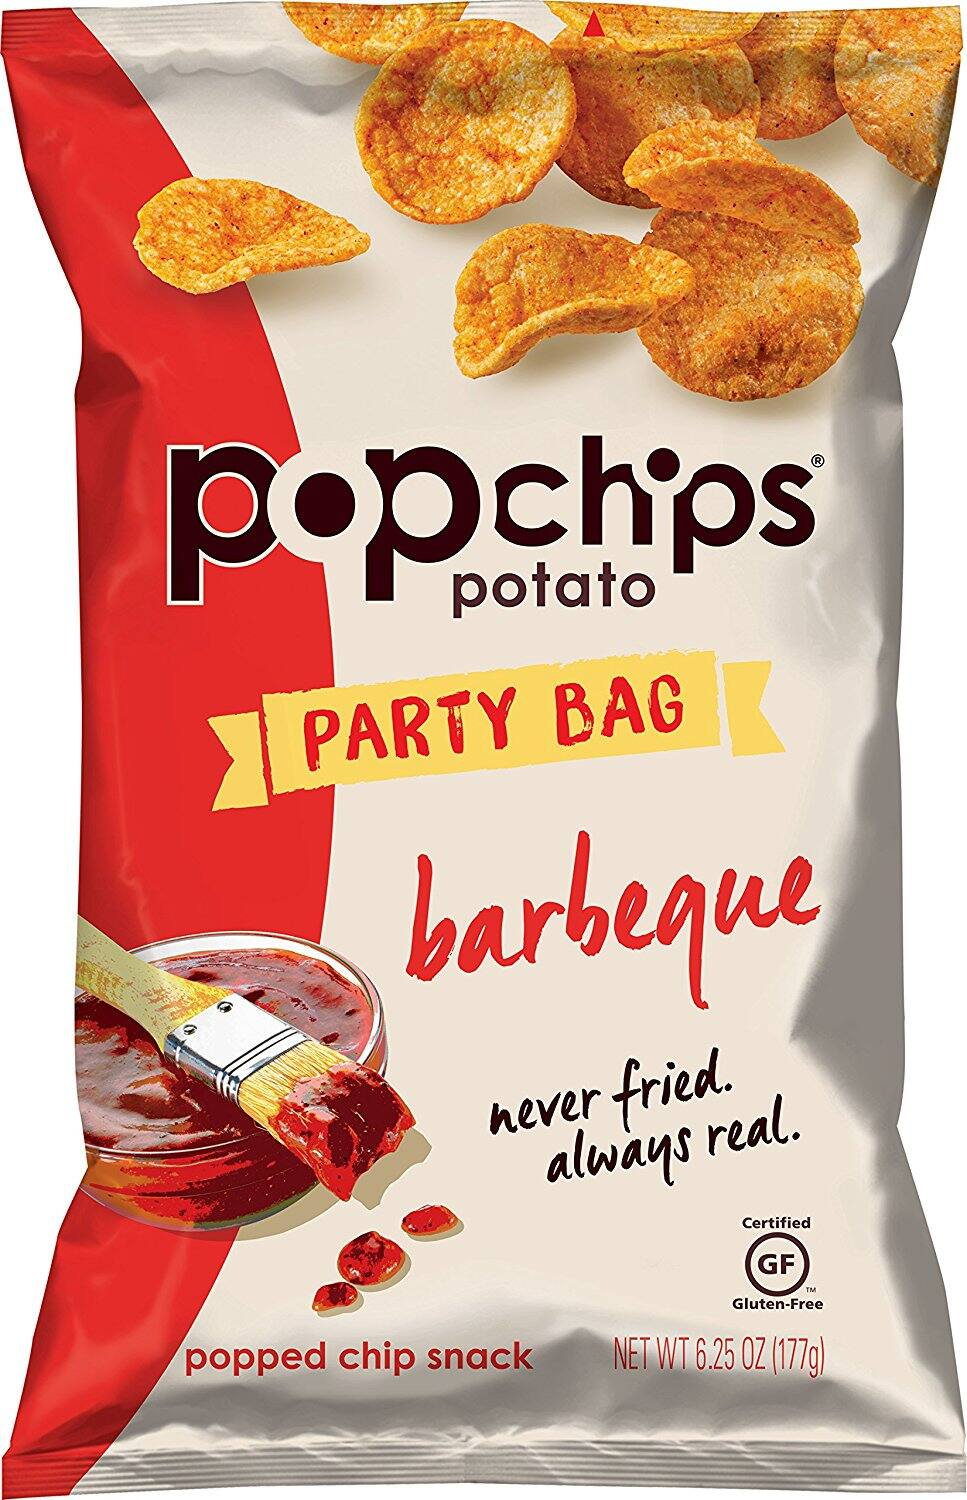 Popchips Potato Chips, BBQ, Super Share Size (6.25 oz Bags) Pack of 12 @amazon: $26 w/ 5% S&S or $22 w/ 15% S&S AC